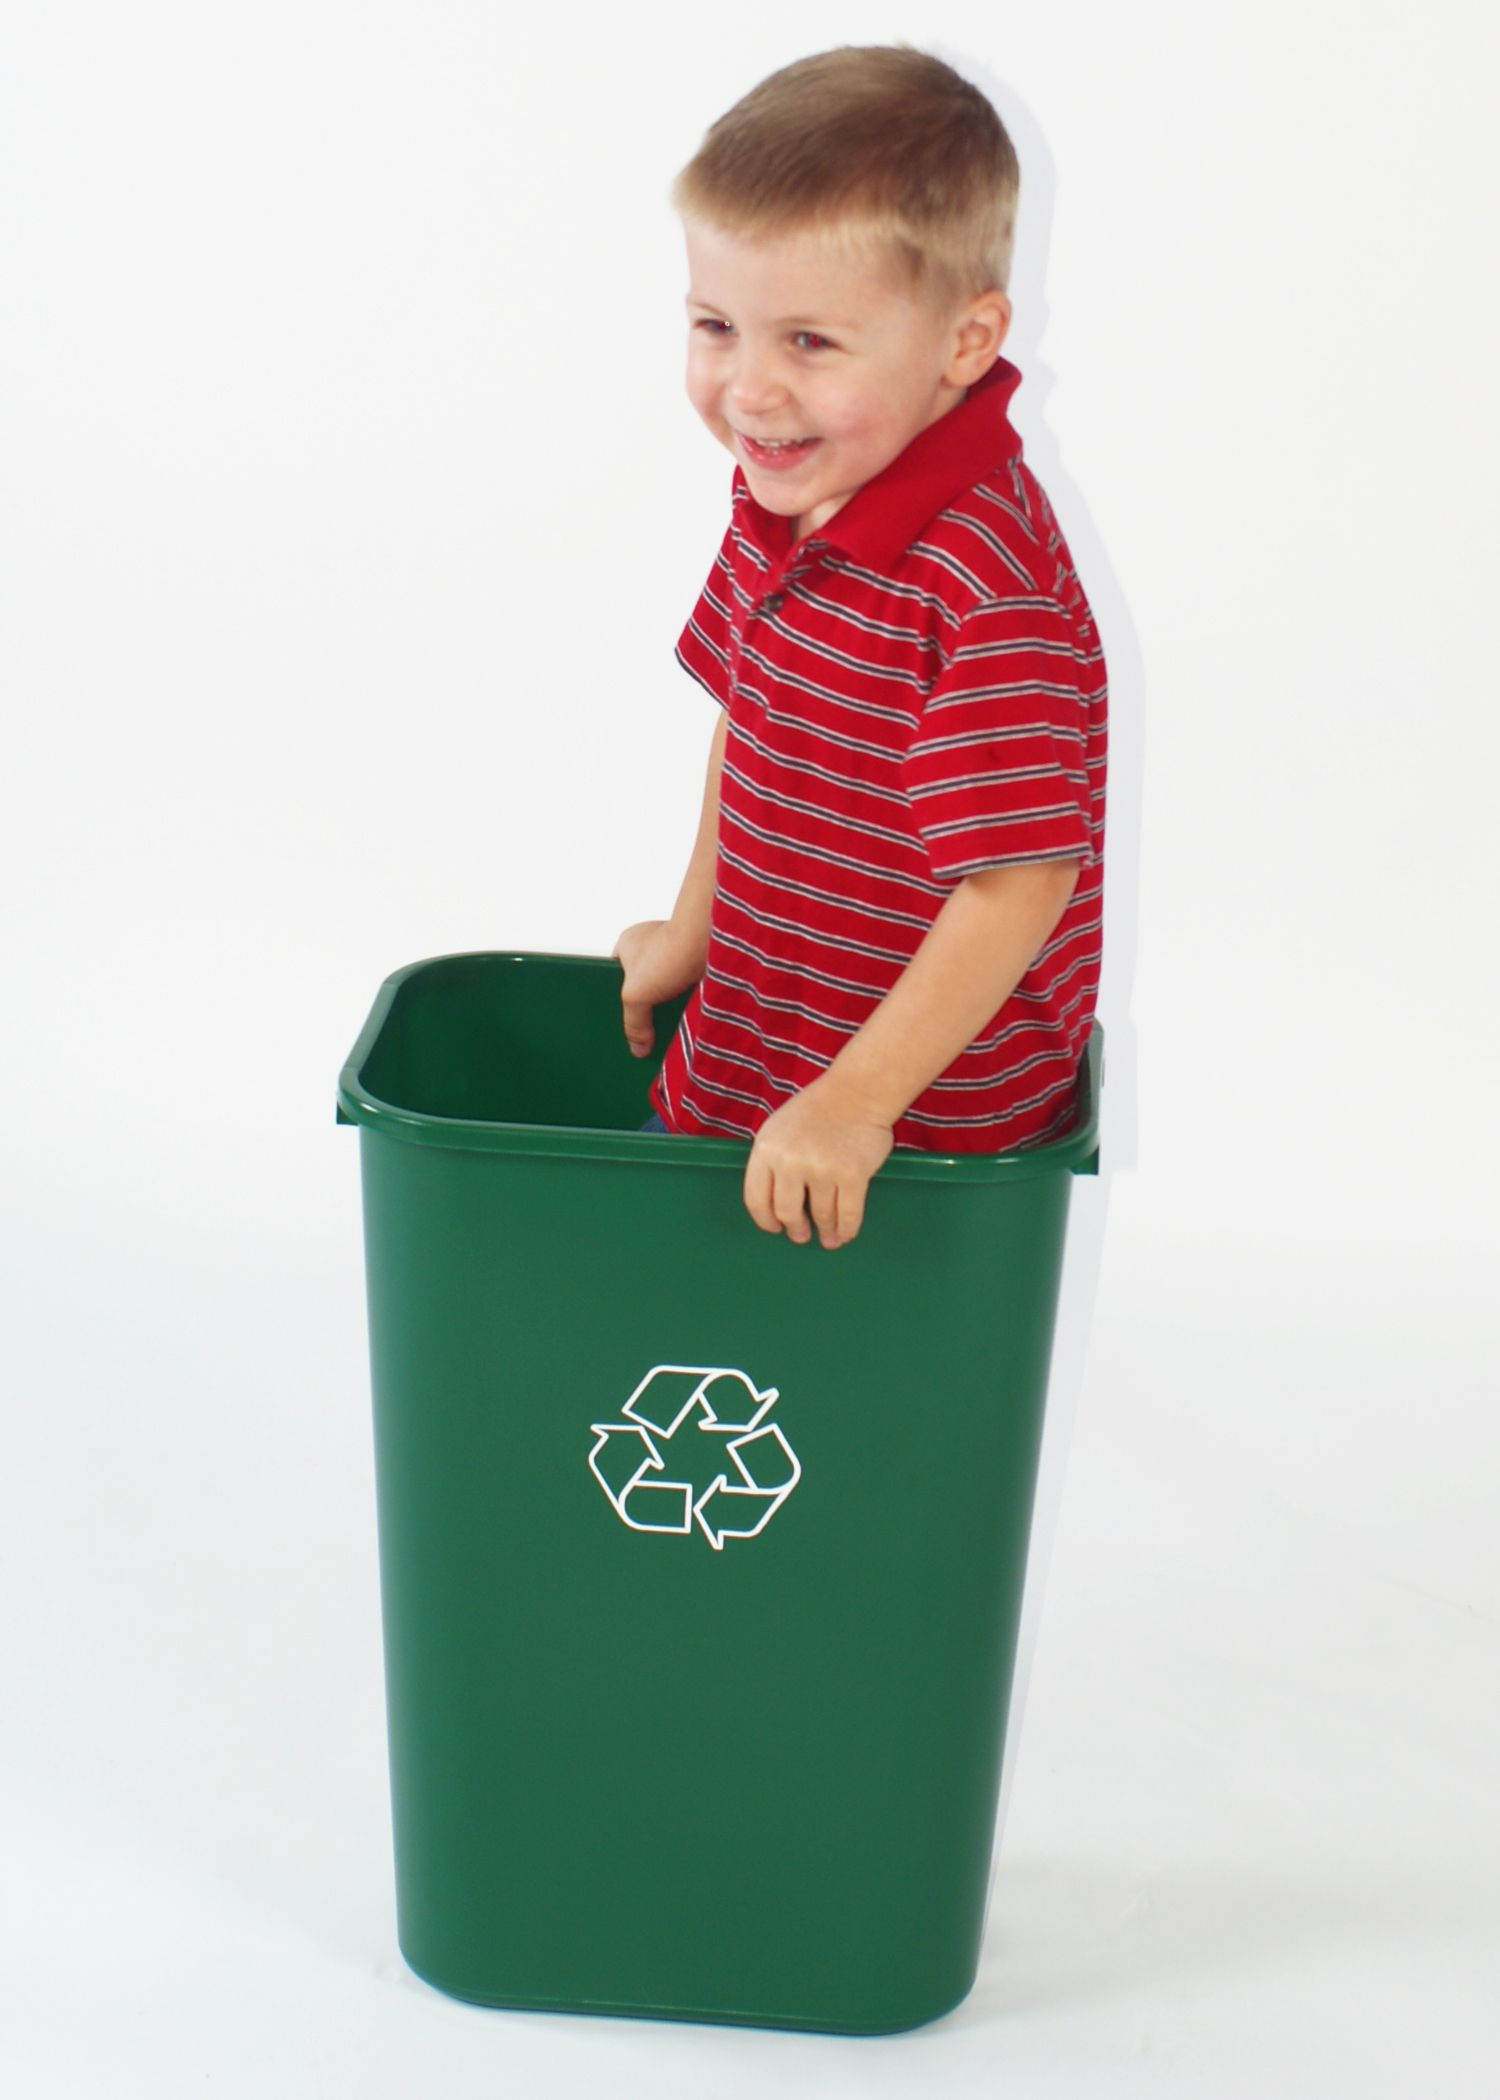 Playing With A Green Recycling Container This Looks Like